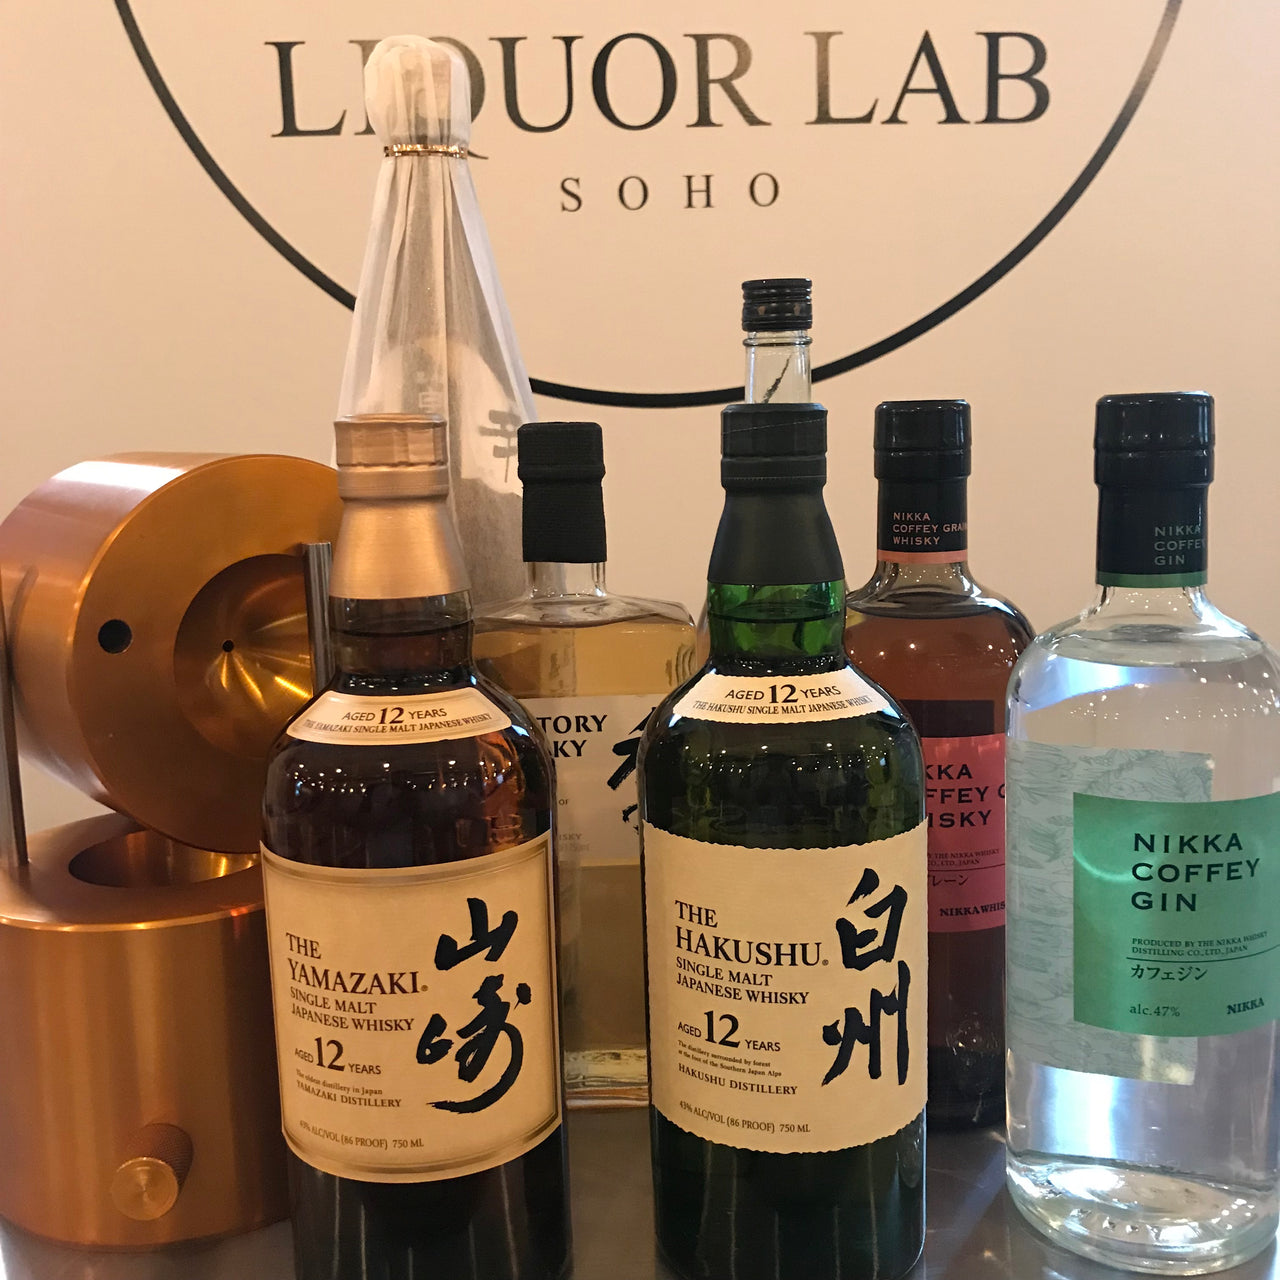 Feb. 7th, 6:30-8:30PM - JAPANESE SPIRITS & COCKTAILS